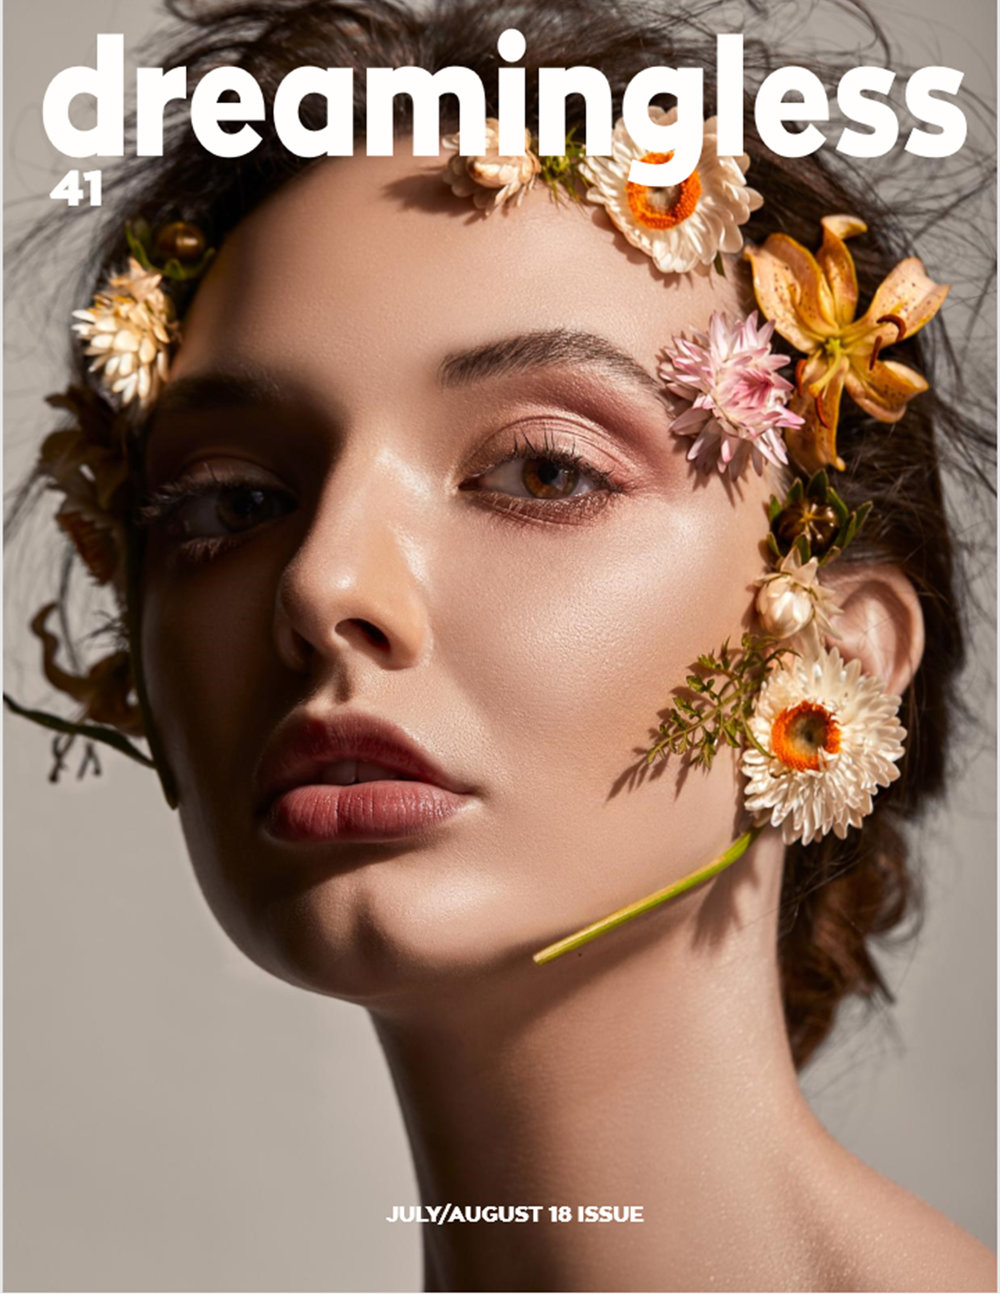 A Flower Girl - Front Cover and Editorial for Dreamingless Magazine Vol. 41Photographer & Retouching: Luis Martinez (IG: @luis_martinez93)HMUA: Rocio Vielma (IG: @vivemakeup) Styling & Creative Direction: Patricio Rivera (IG: @twelvethirtyfourflowers)Model: Alexandria Bryant (IG: @alexeatsplants) from The Kim Dawson Agency